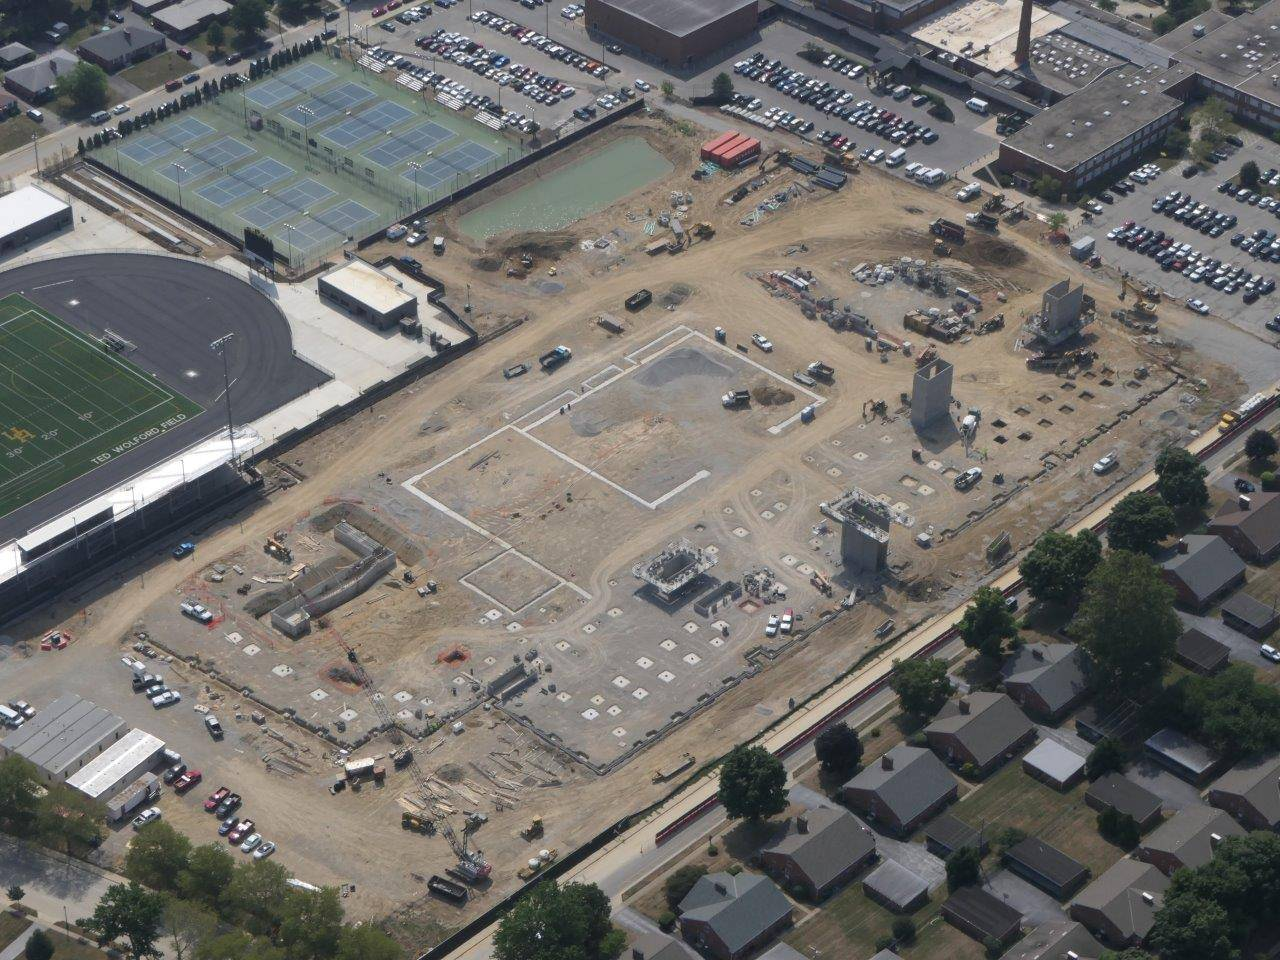 An aerial looking southeast at the site of the new high school building